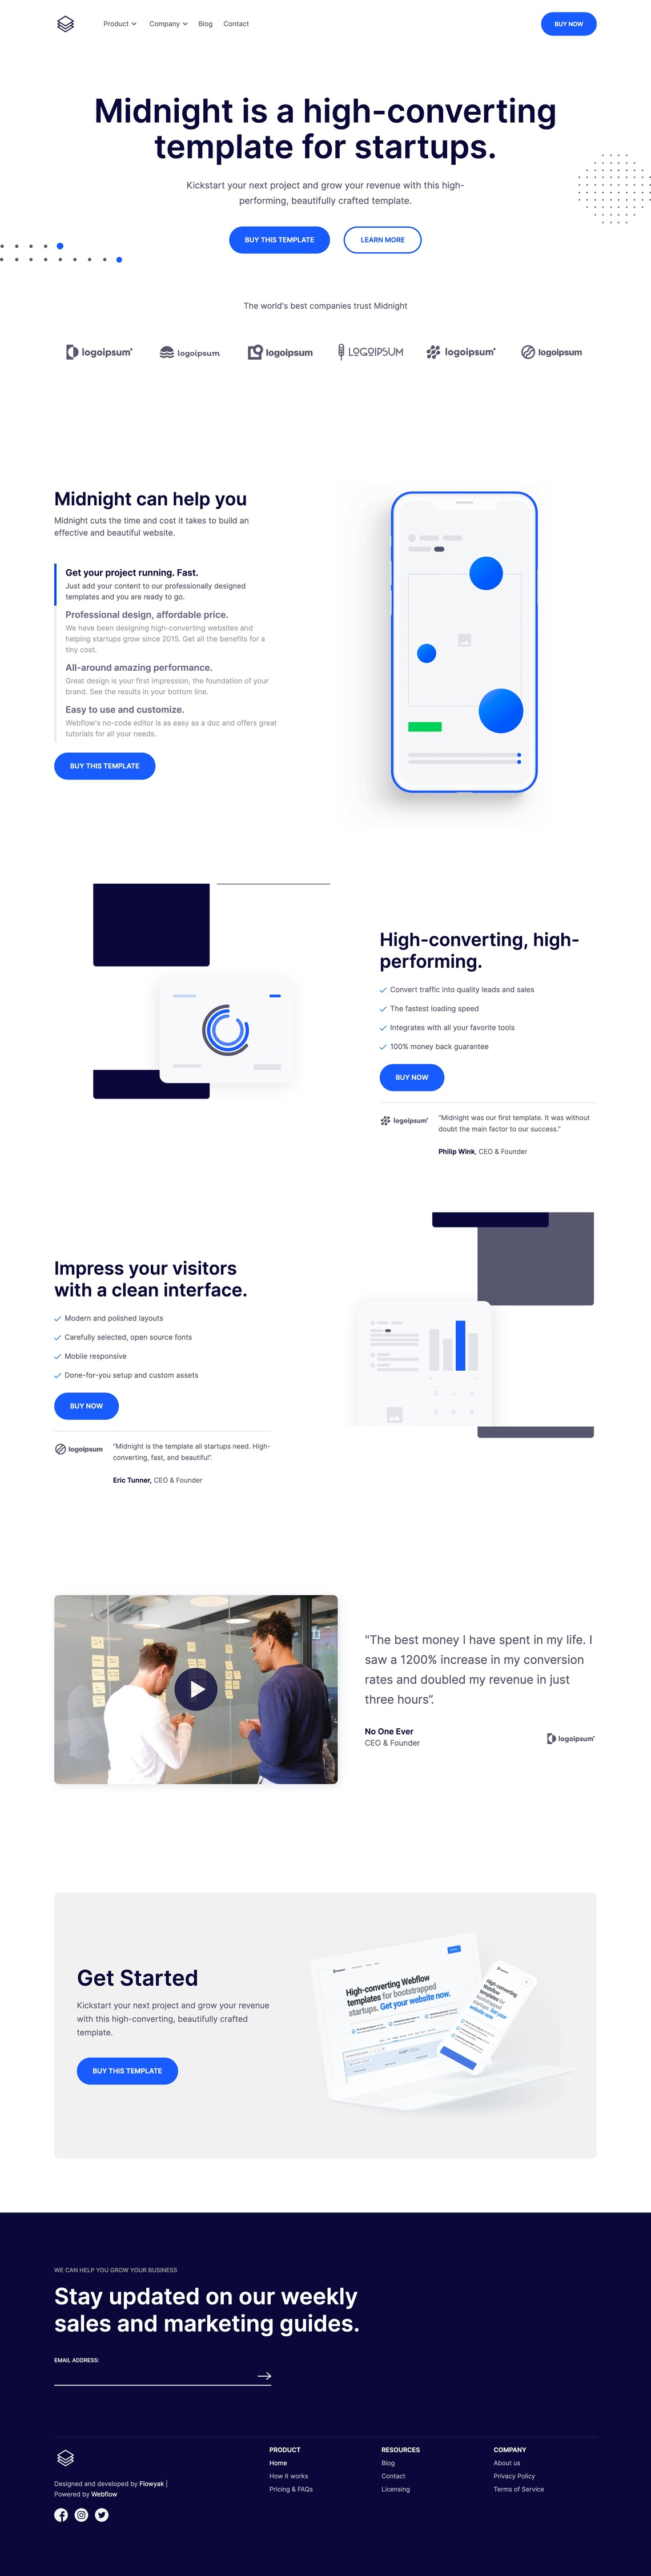 Midnight - Startup Webflow Template